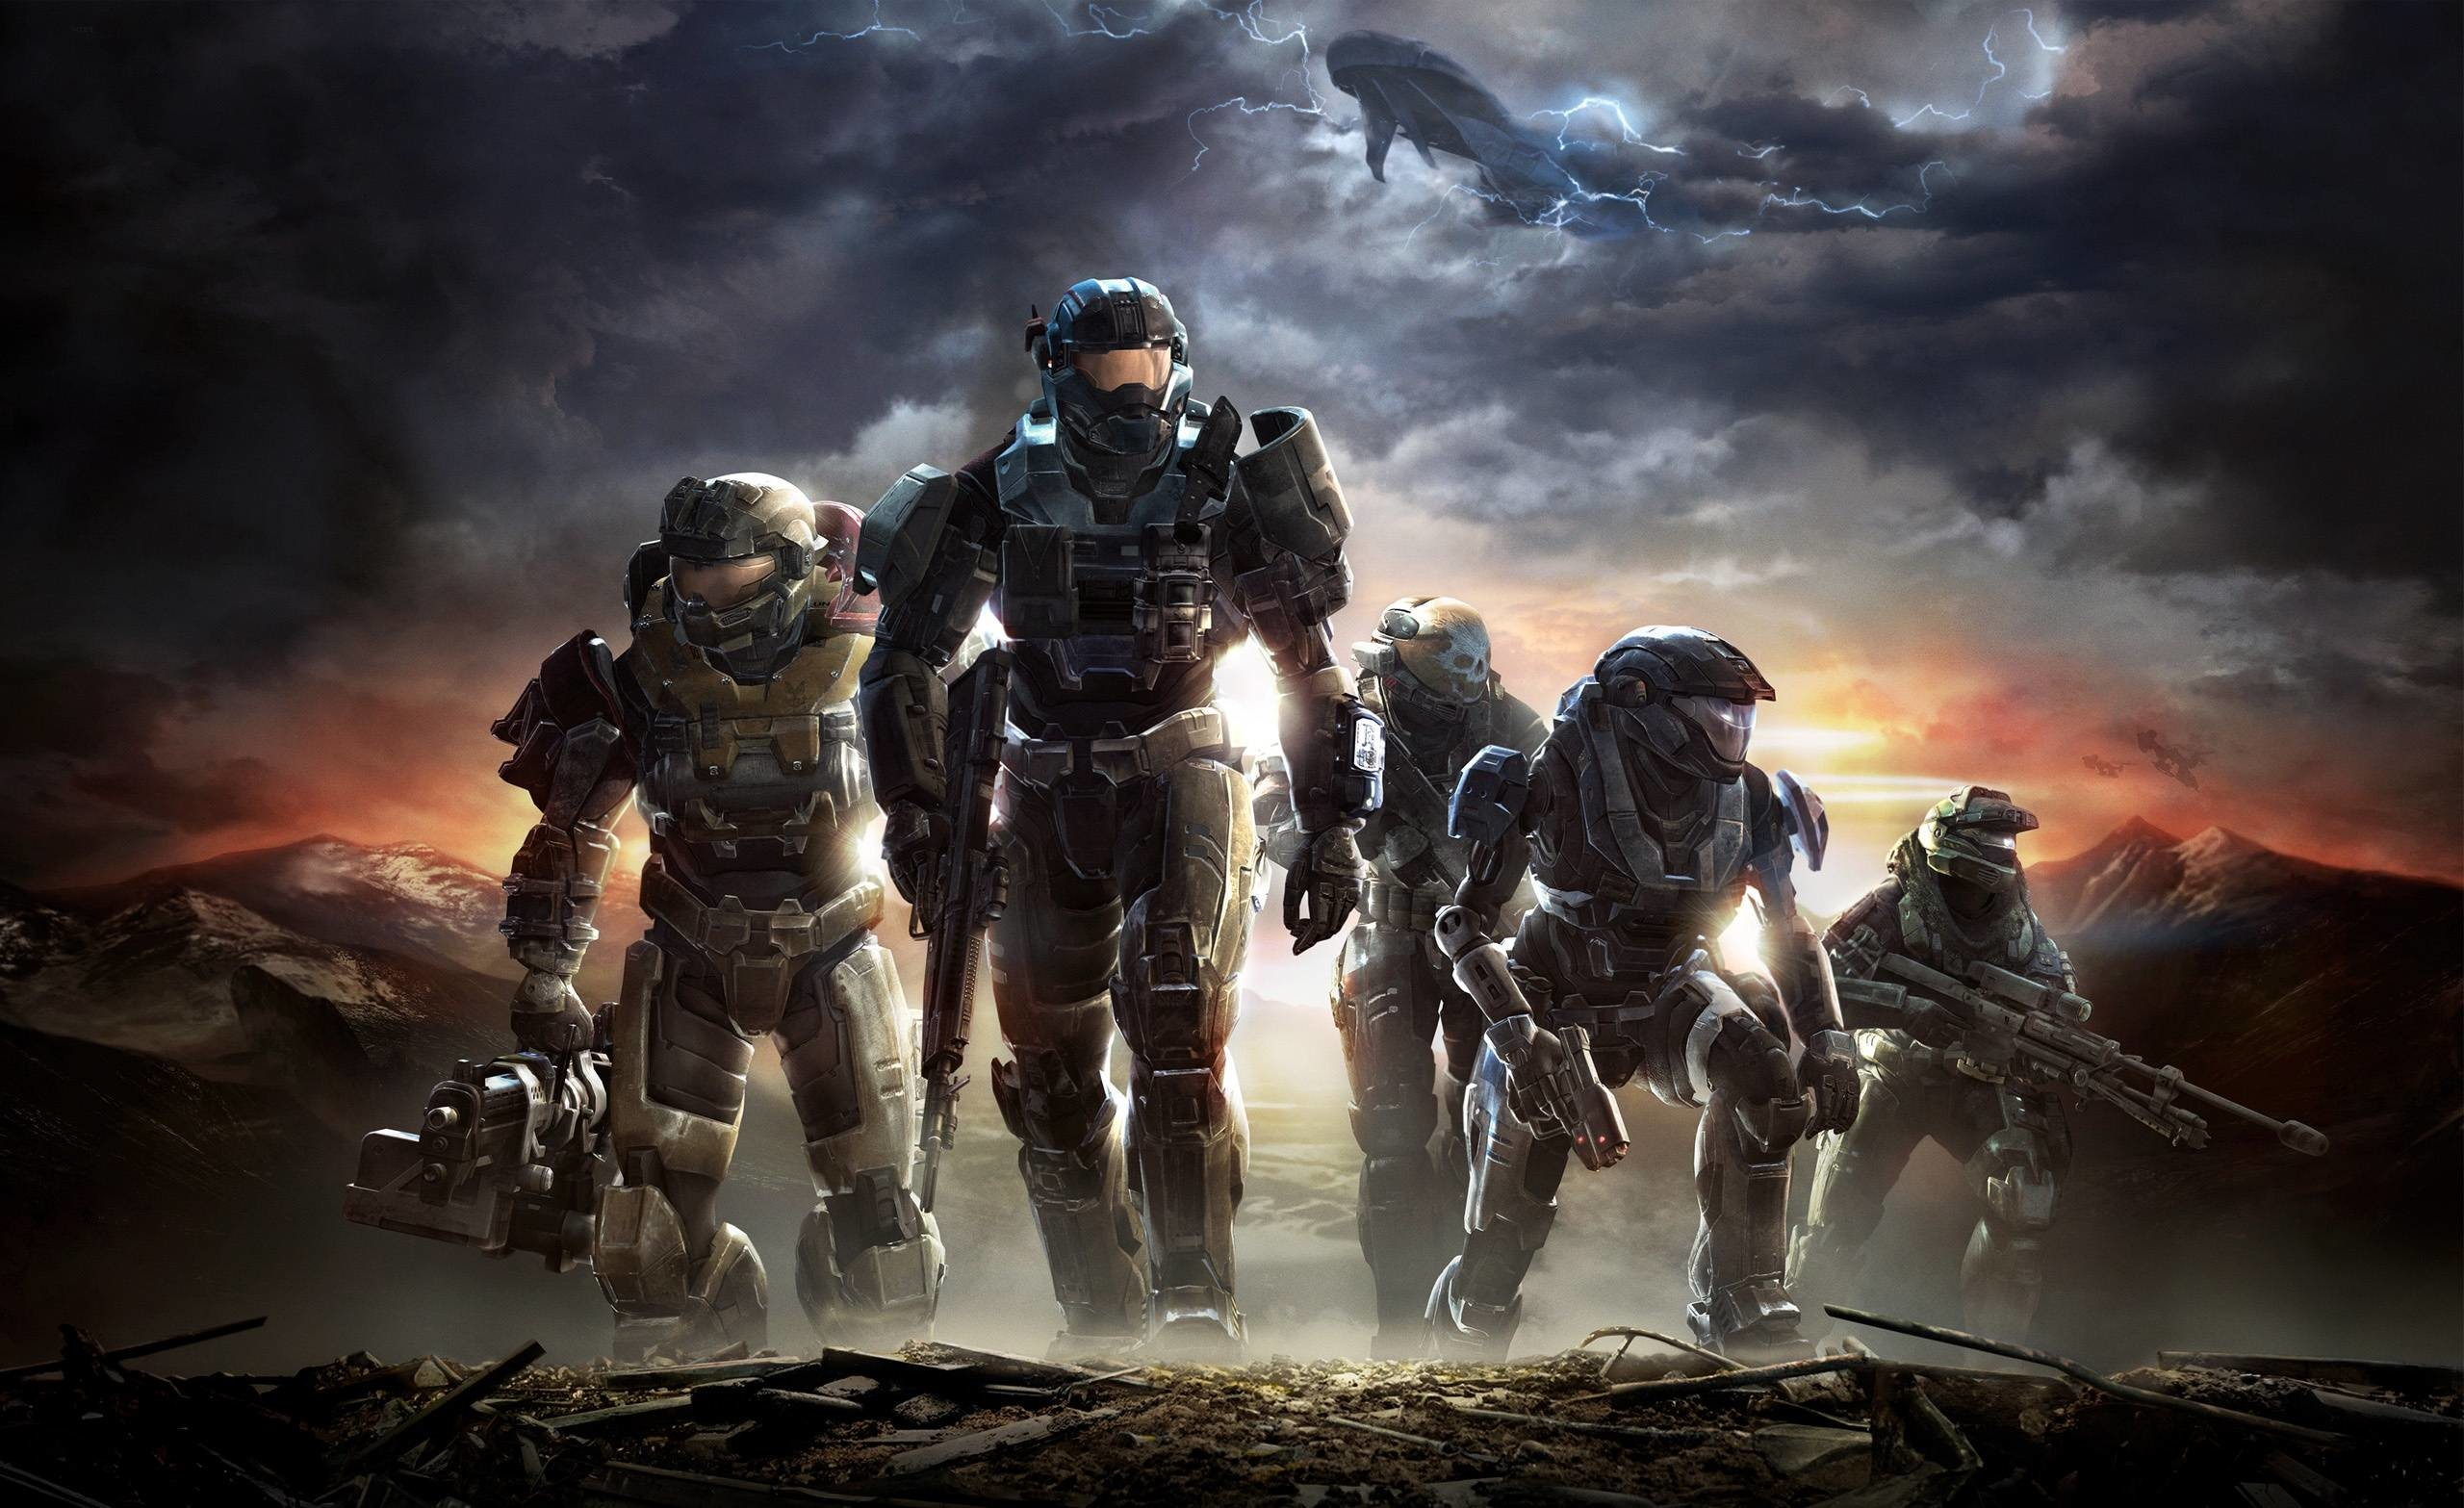 400 Halo Wallpapers   Halo Backgrounds